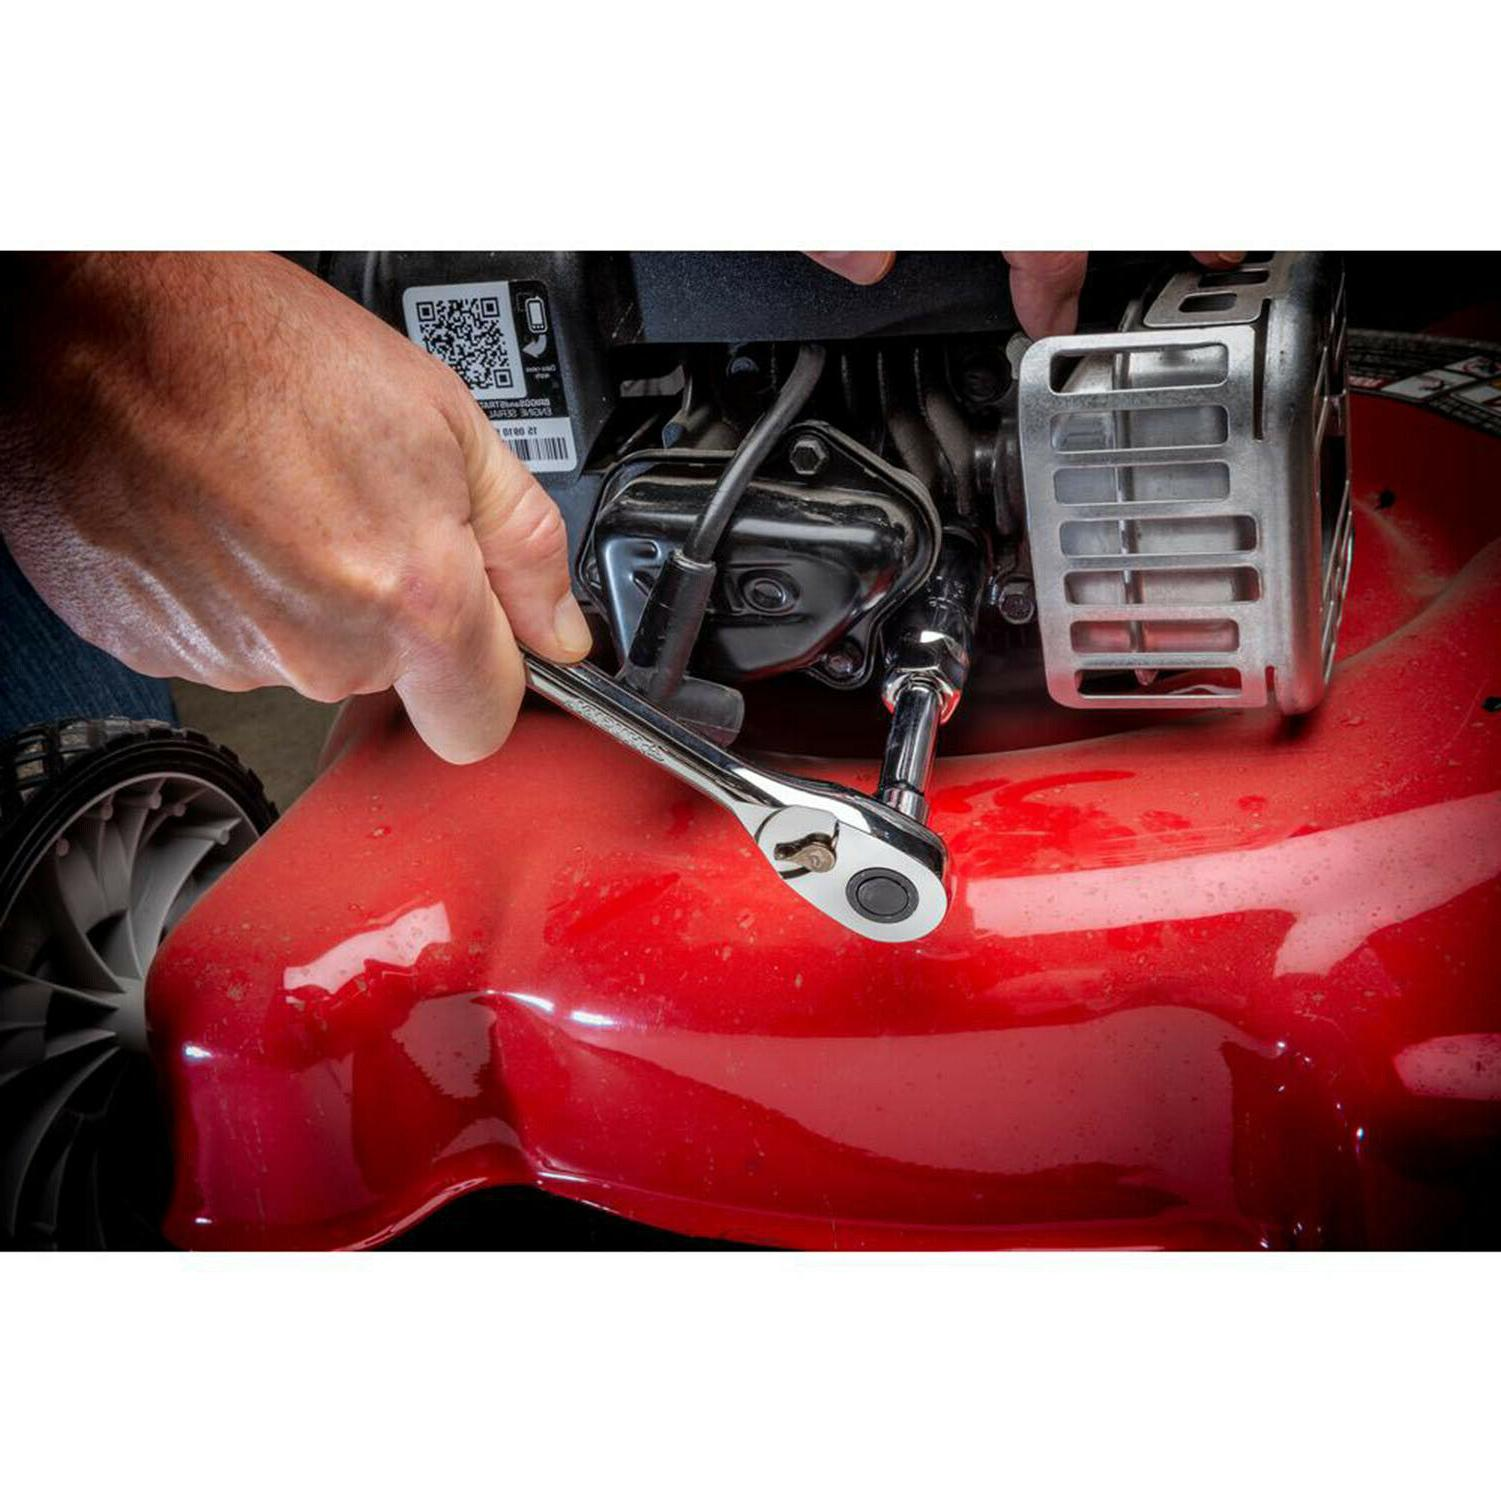 HUSKY 270-PIECE TOOL Metric Sockets Wrenches Ratchets